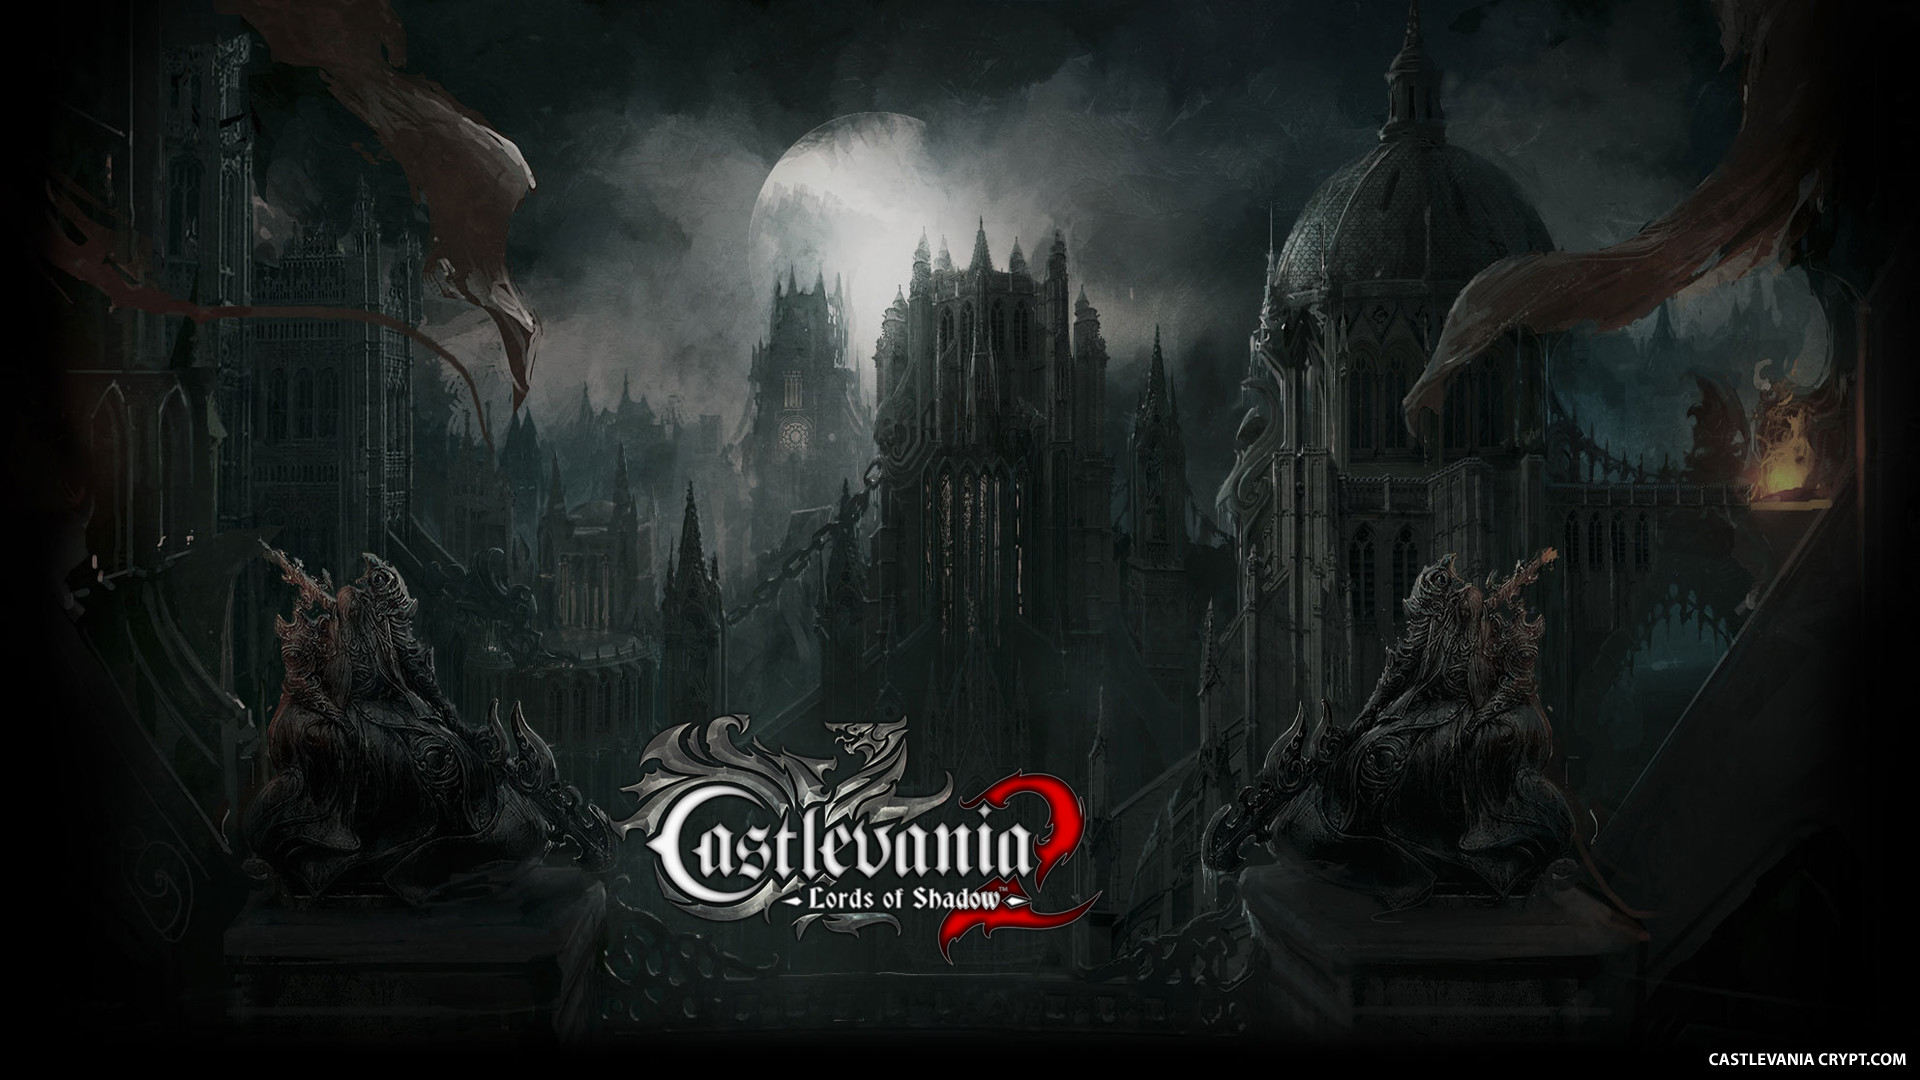 Res: 1920x1080, Castlevania: Lords of Shadow 2 Wallpaper